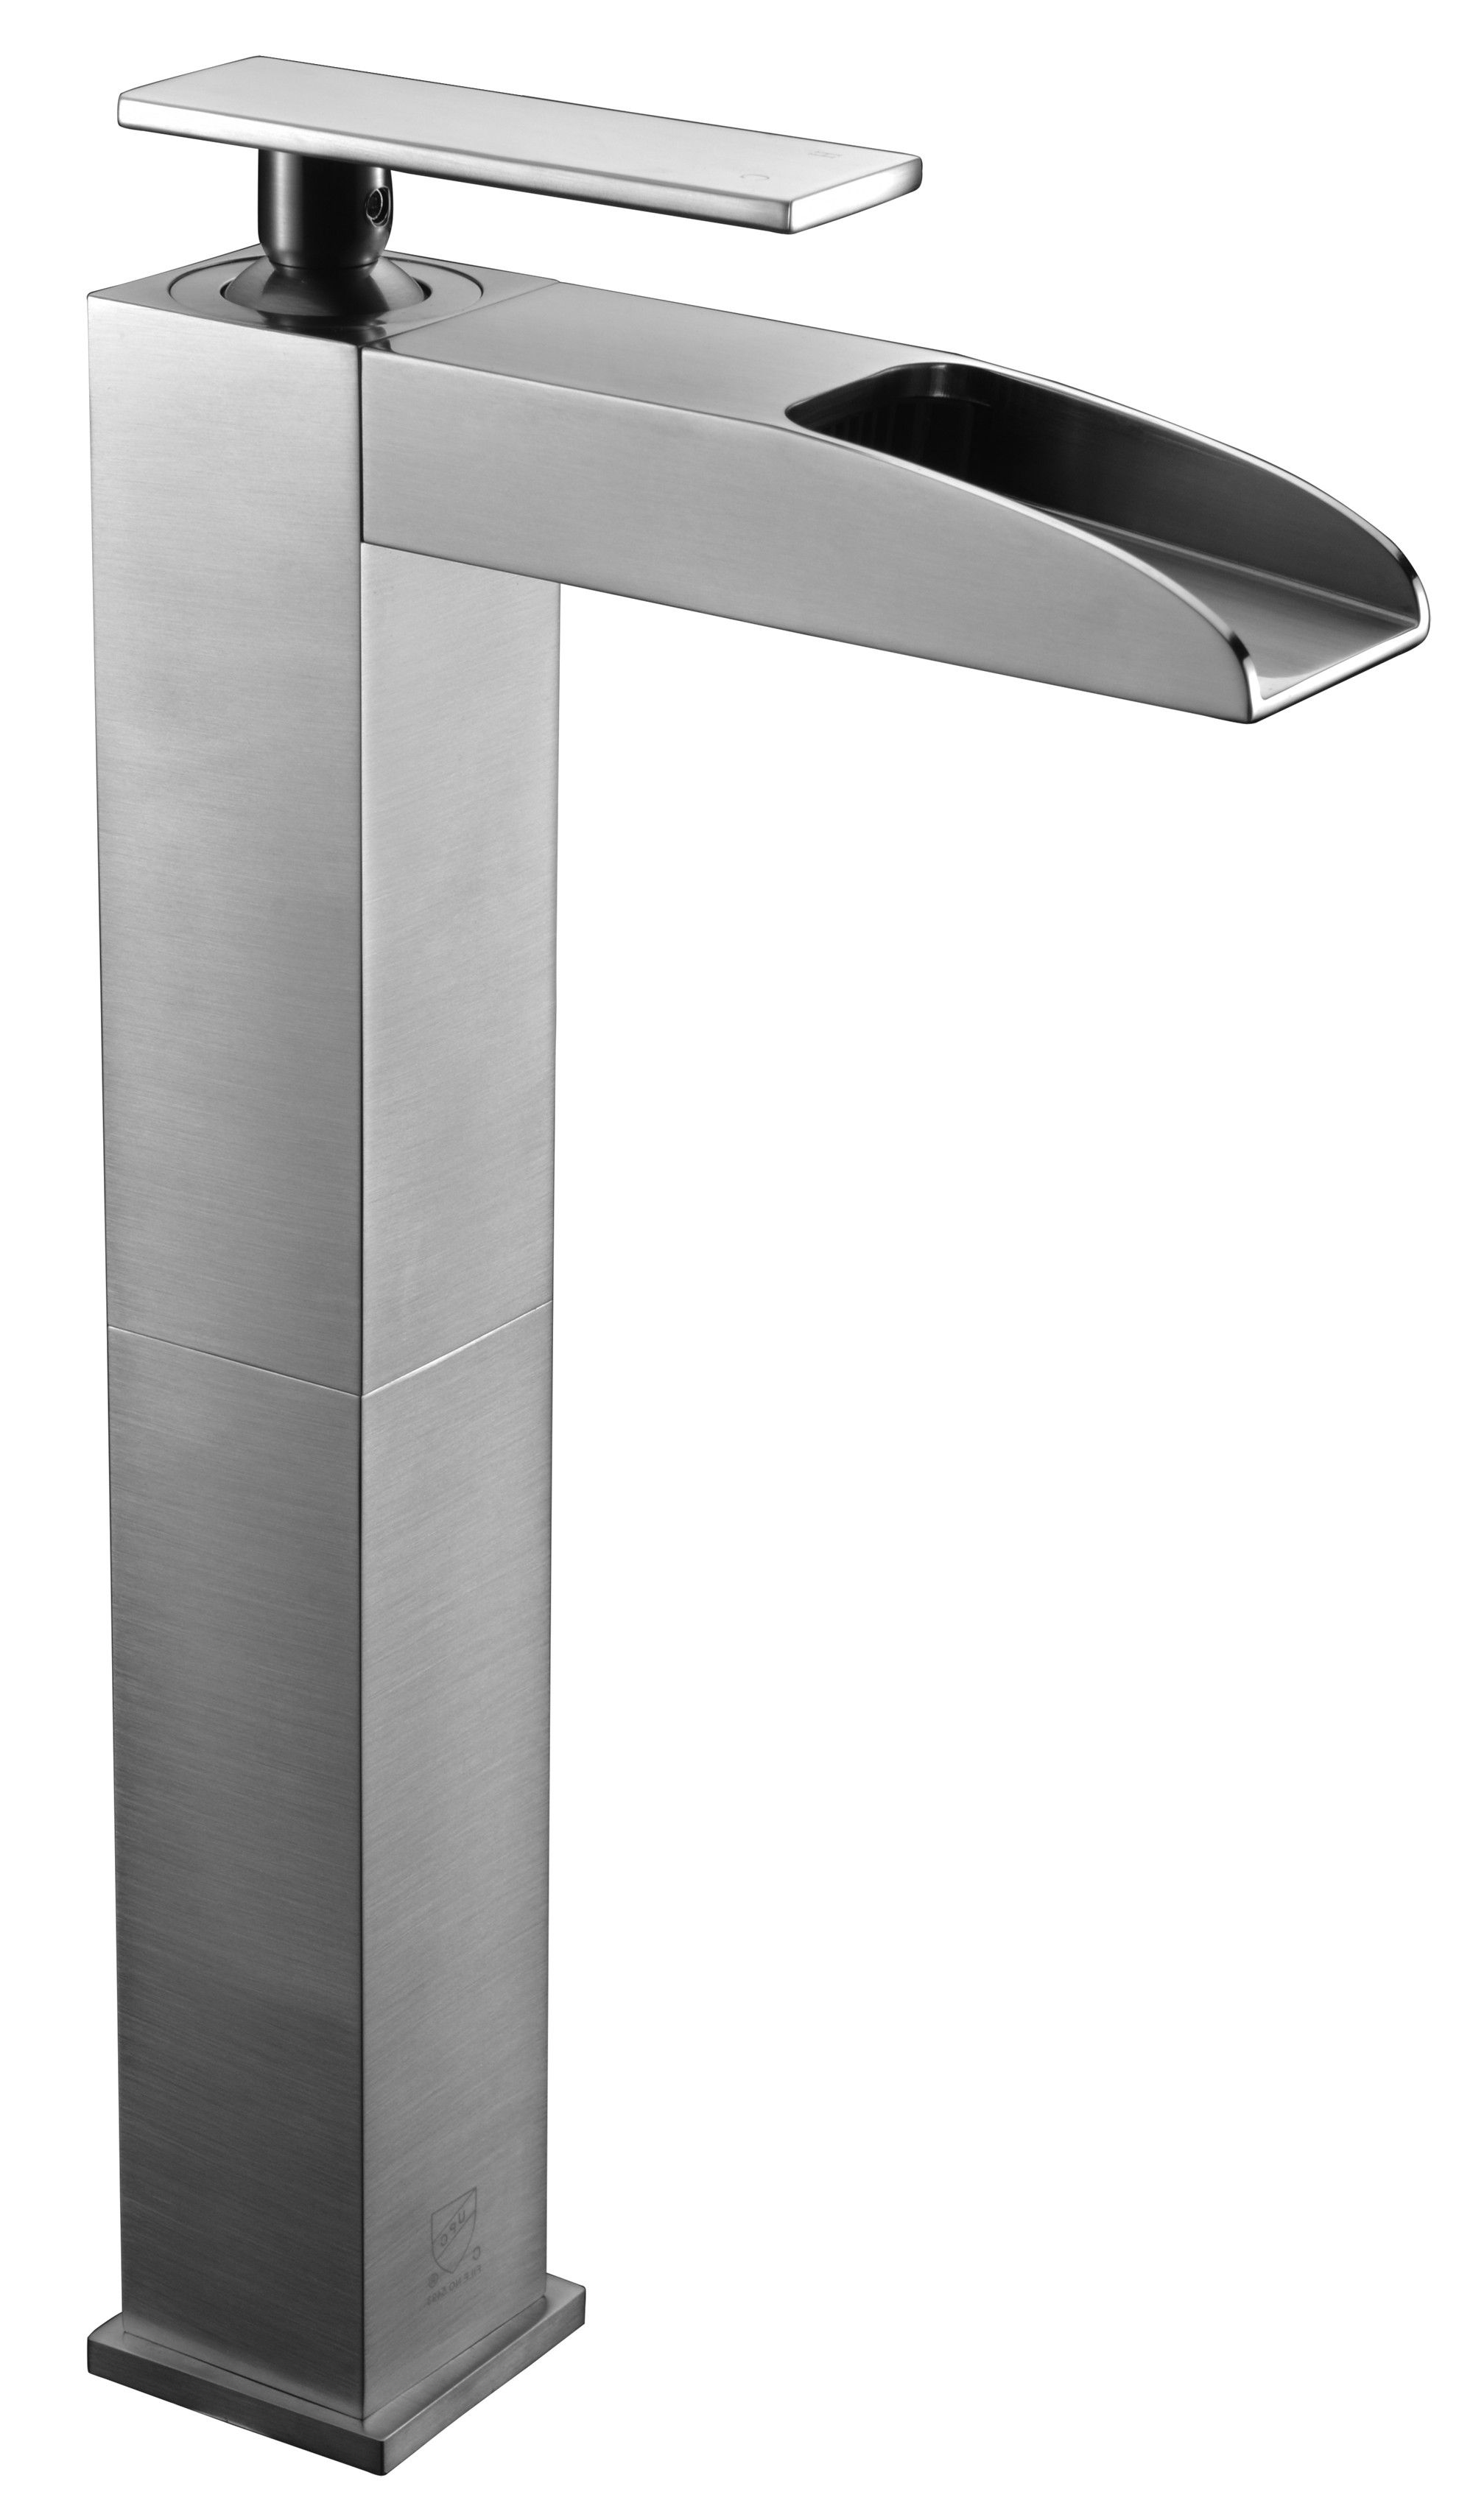 Alfi Brand Ab1597 Bn Brushed Nickel Single Hole Tall Waterfall